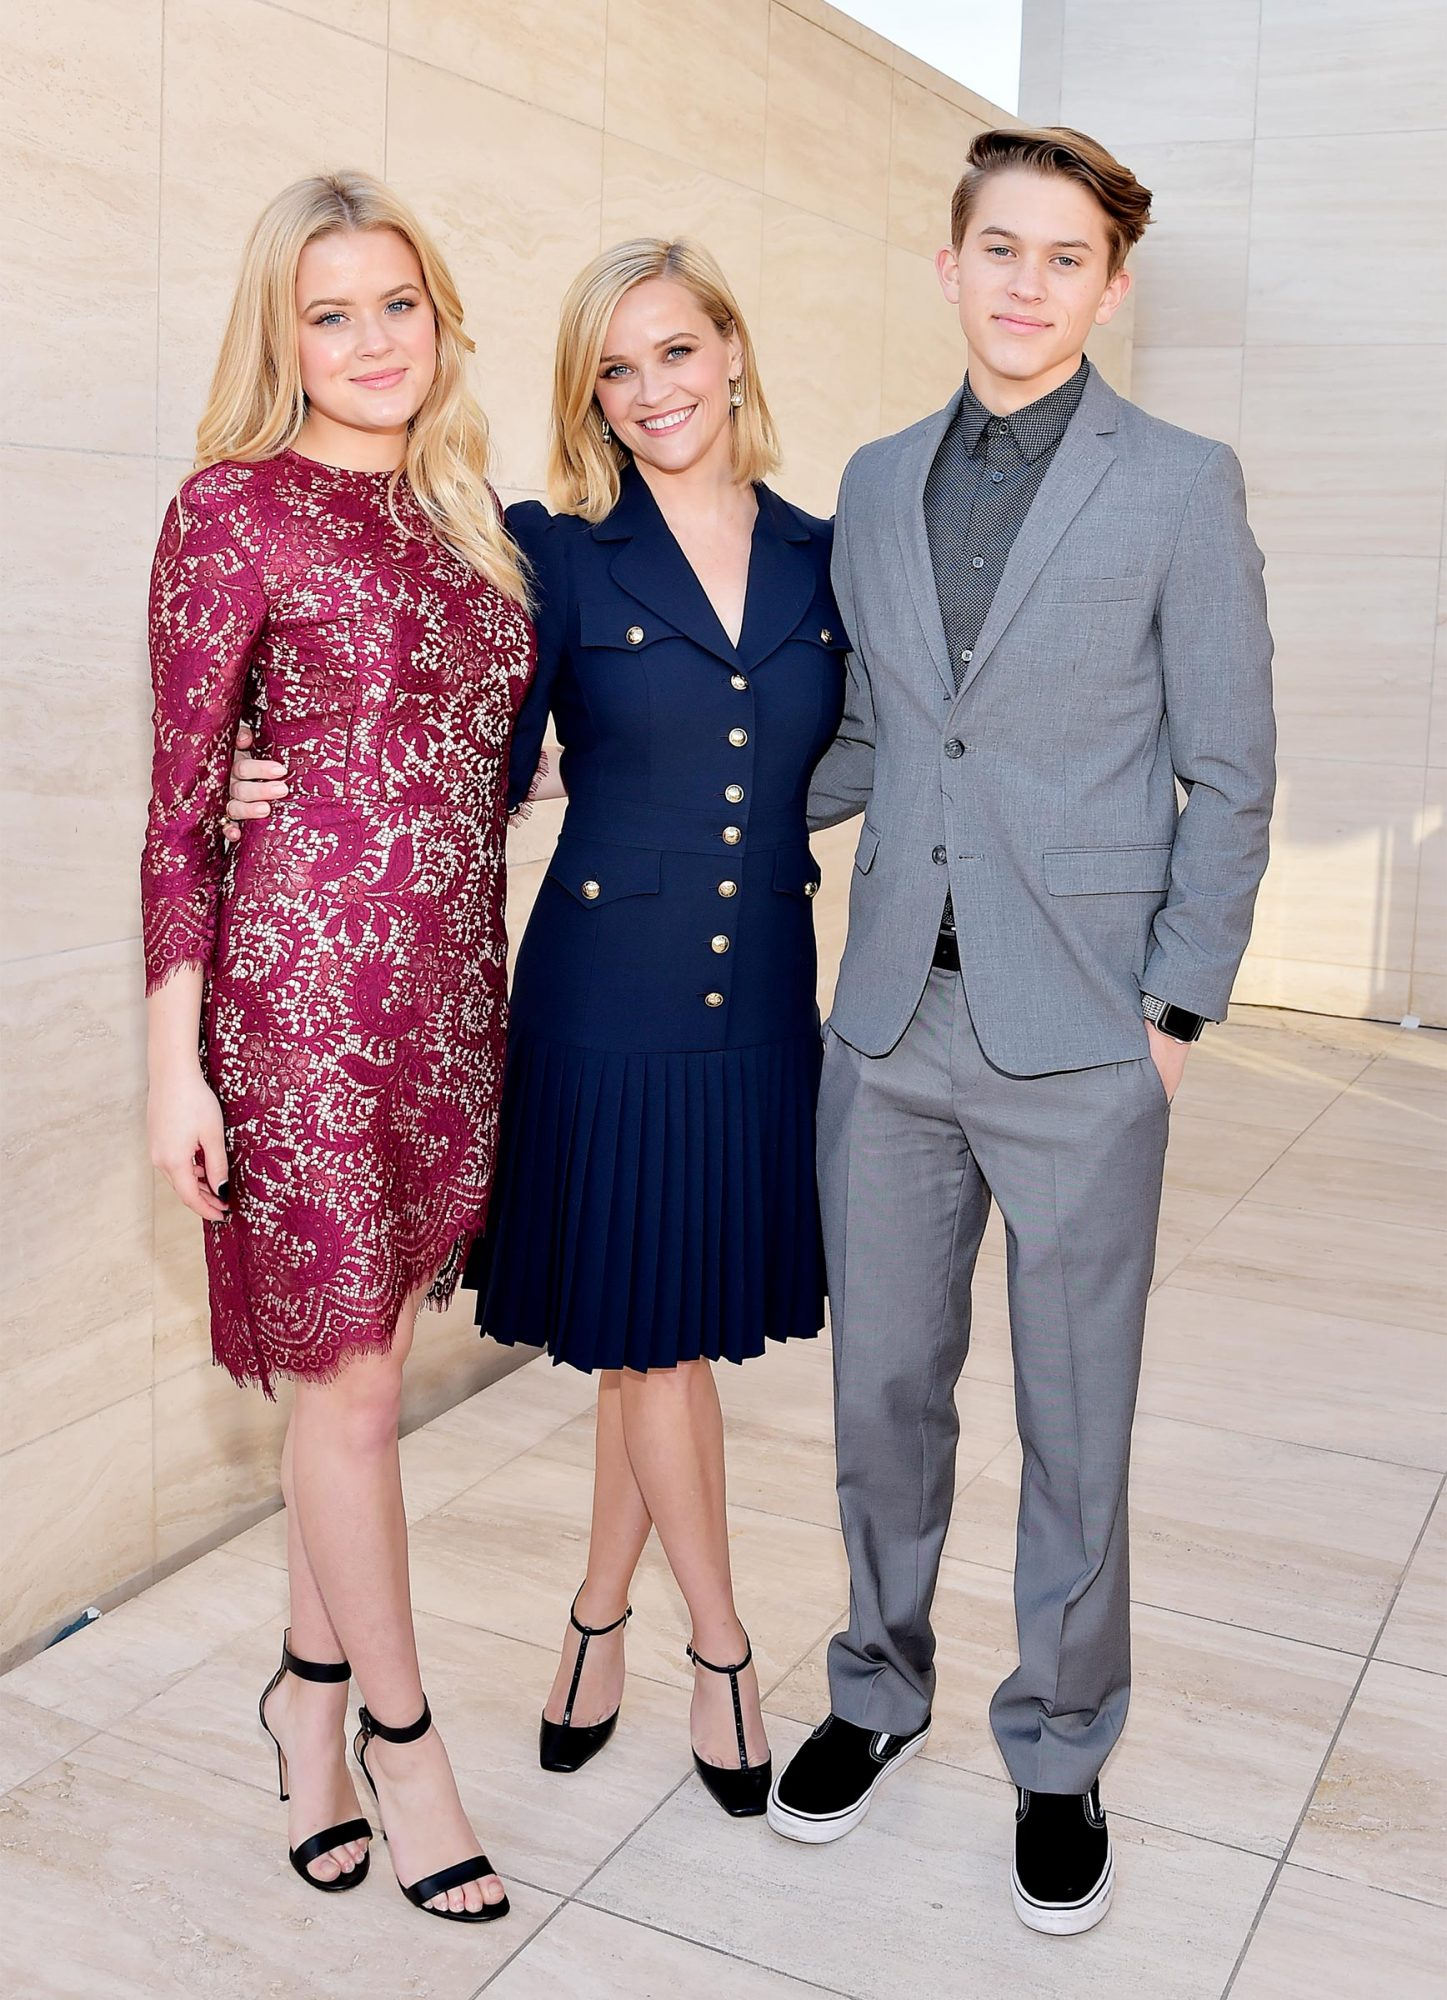 Elizabeth Phillippe, honoree Reese Witherspoon, and Deacon Reese Phillippe